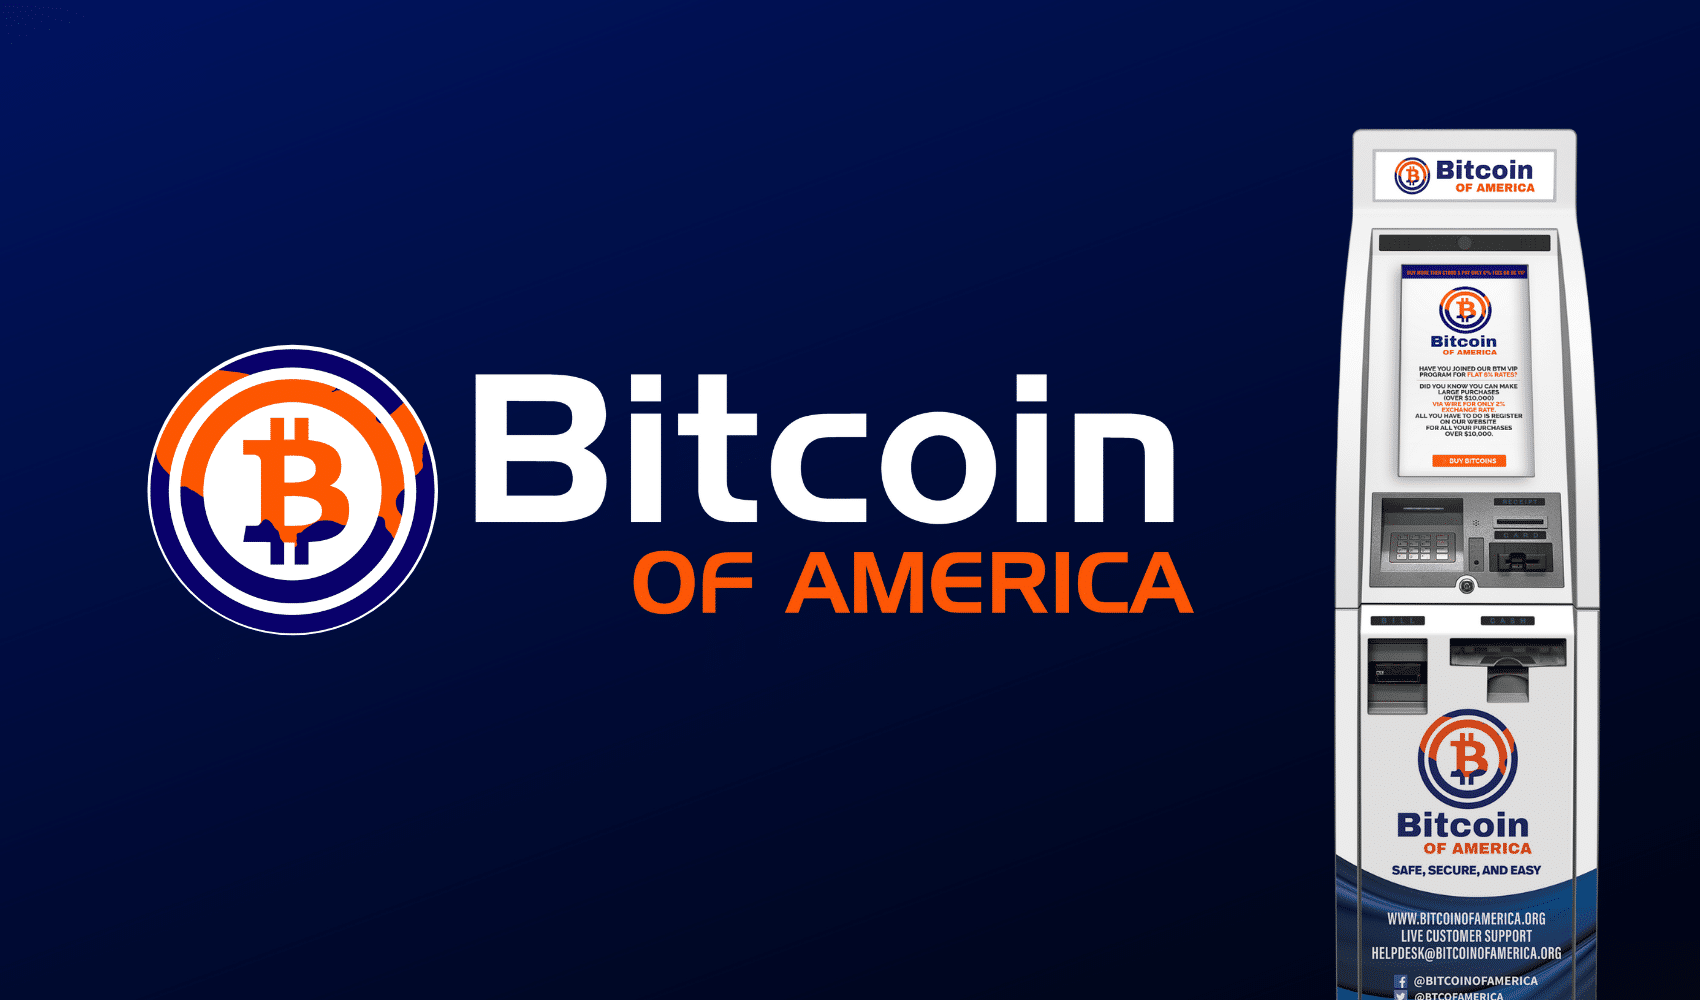 Bitcoin of America Blog is Back!